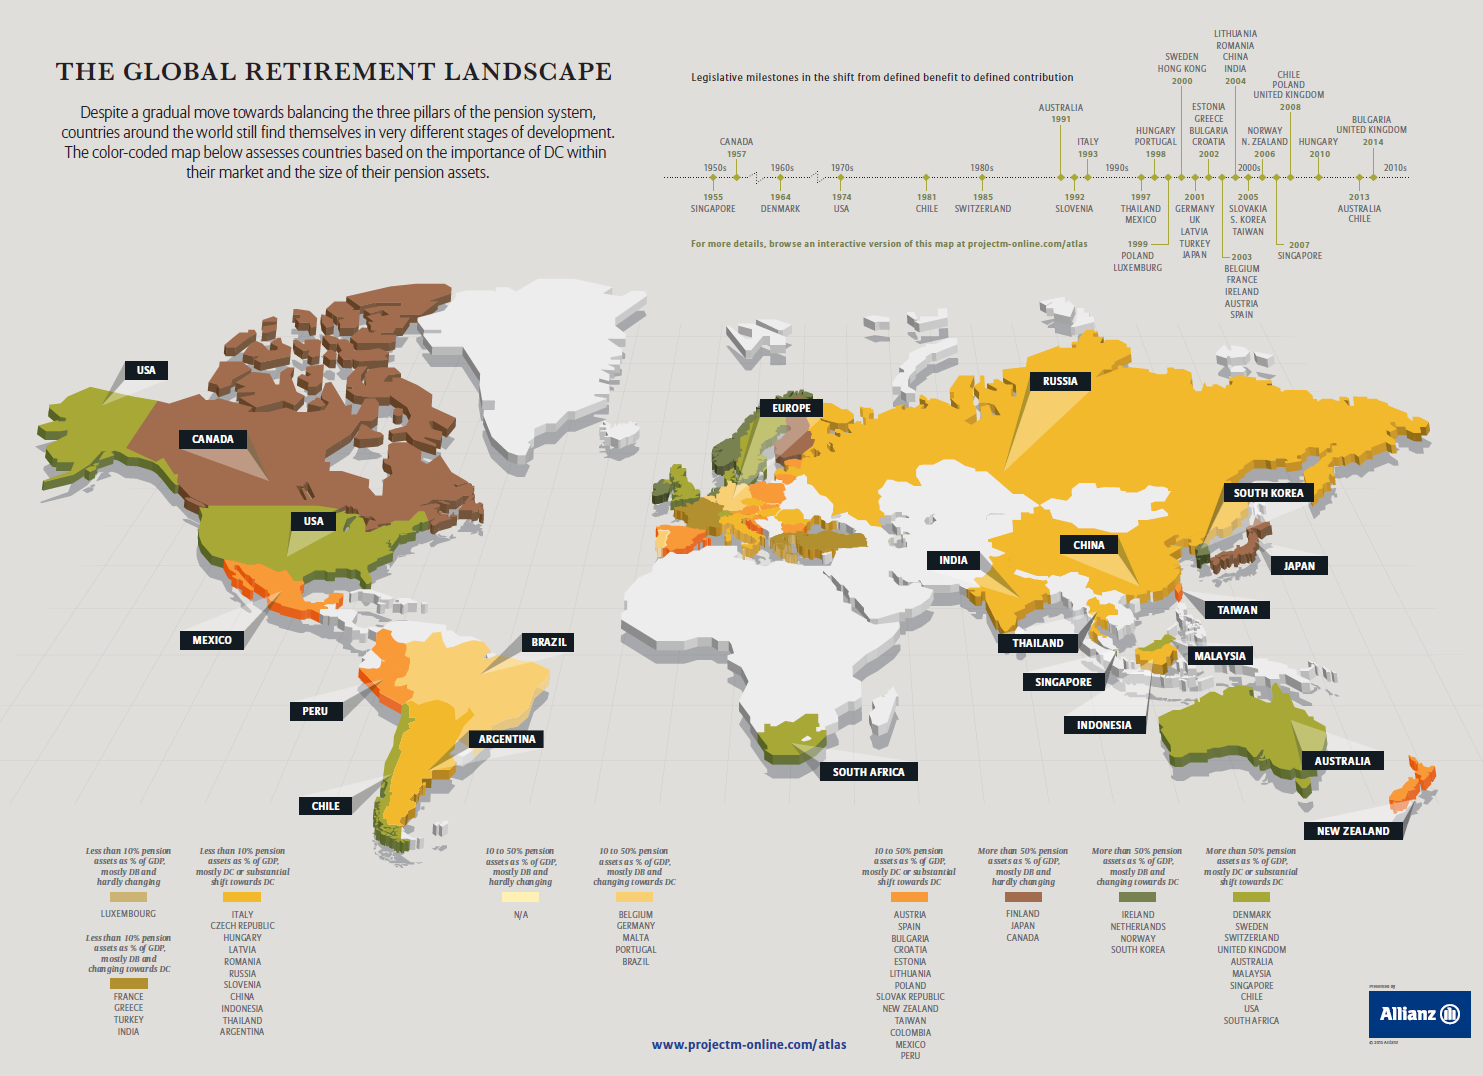 Global Retirement Landscape 2015